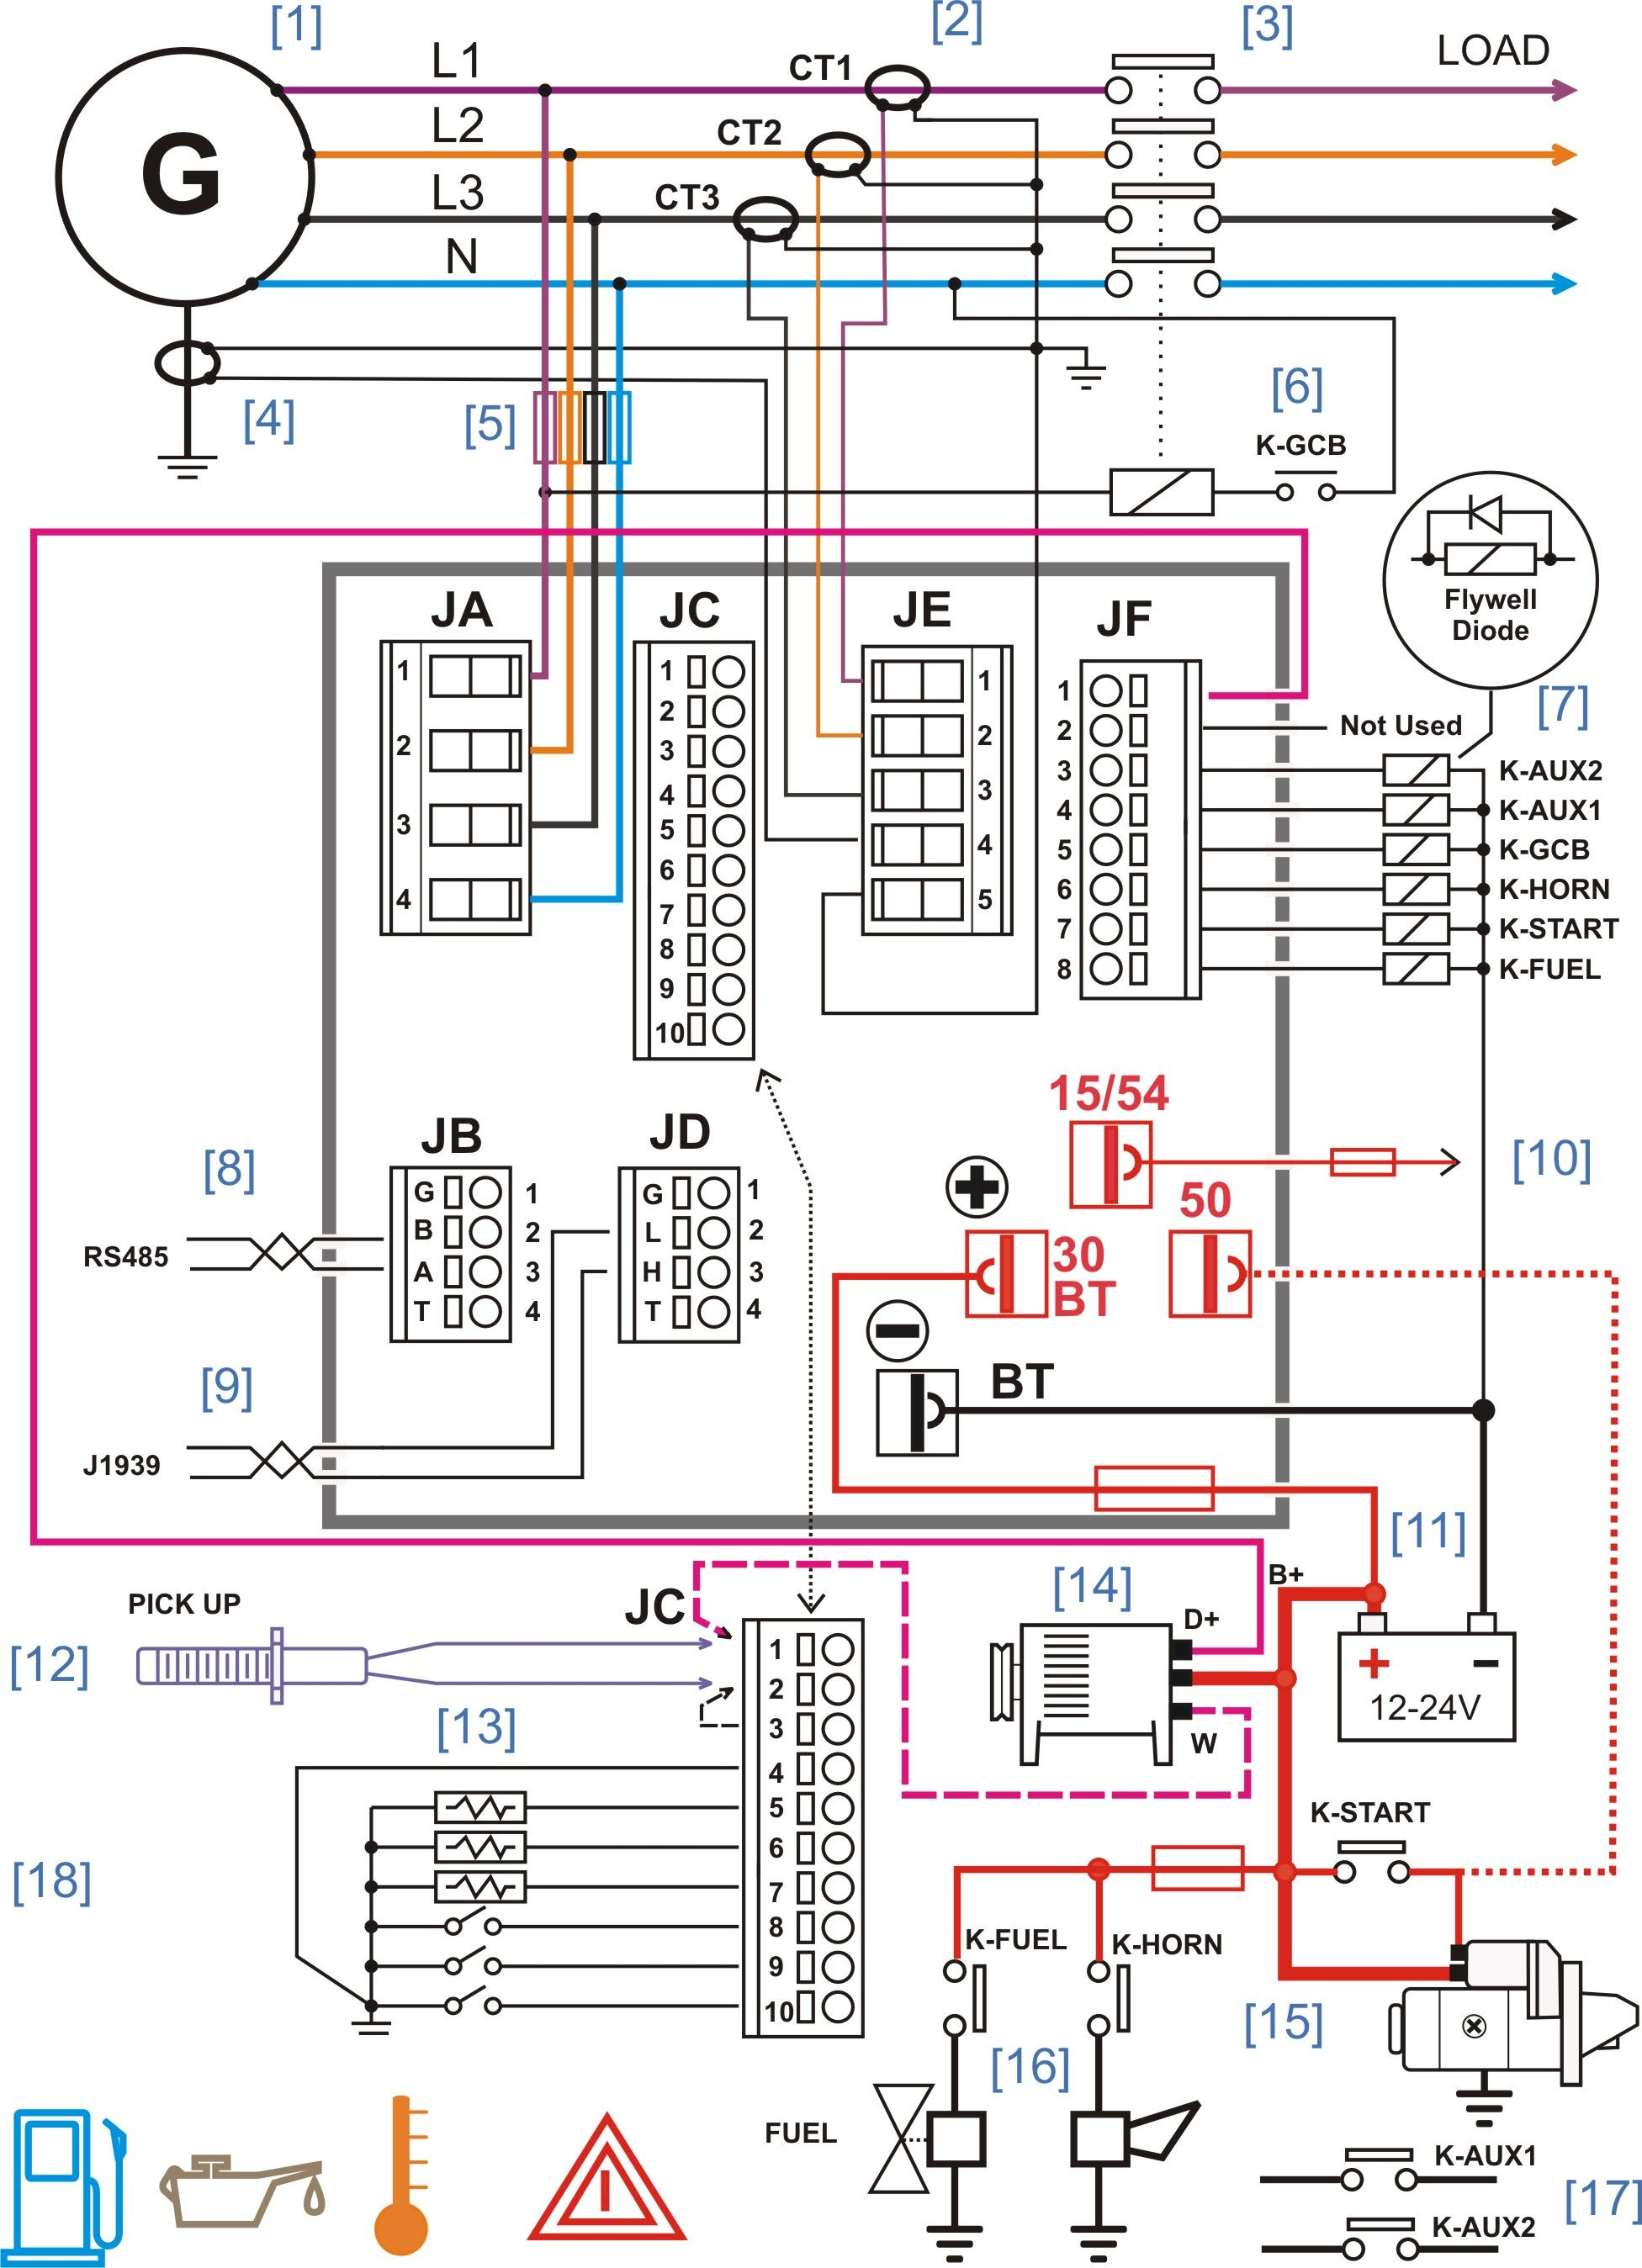 Control Panel Diagram - DATA Wiring Diagrams •